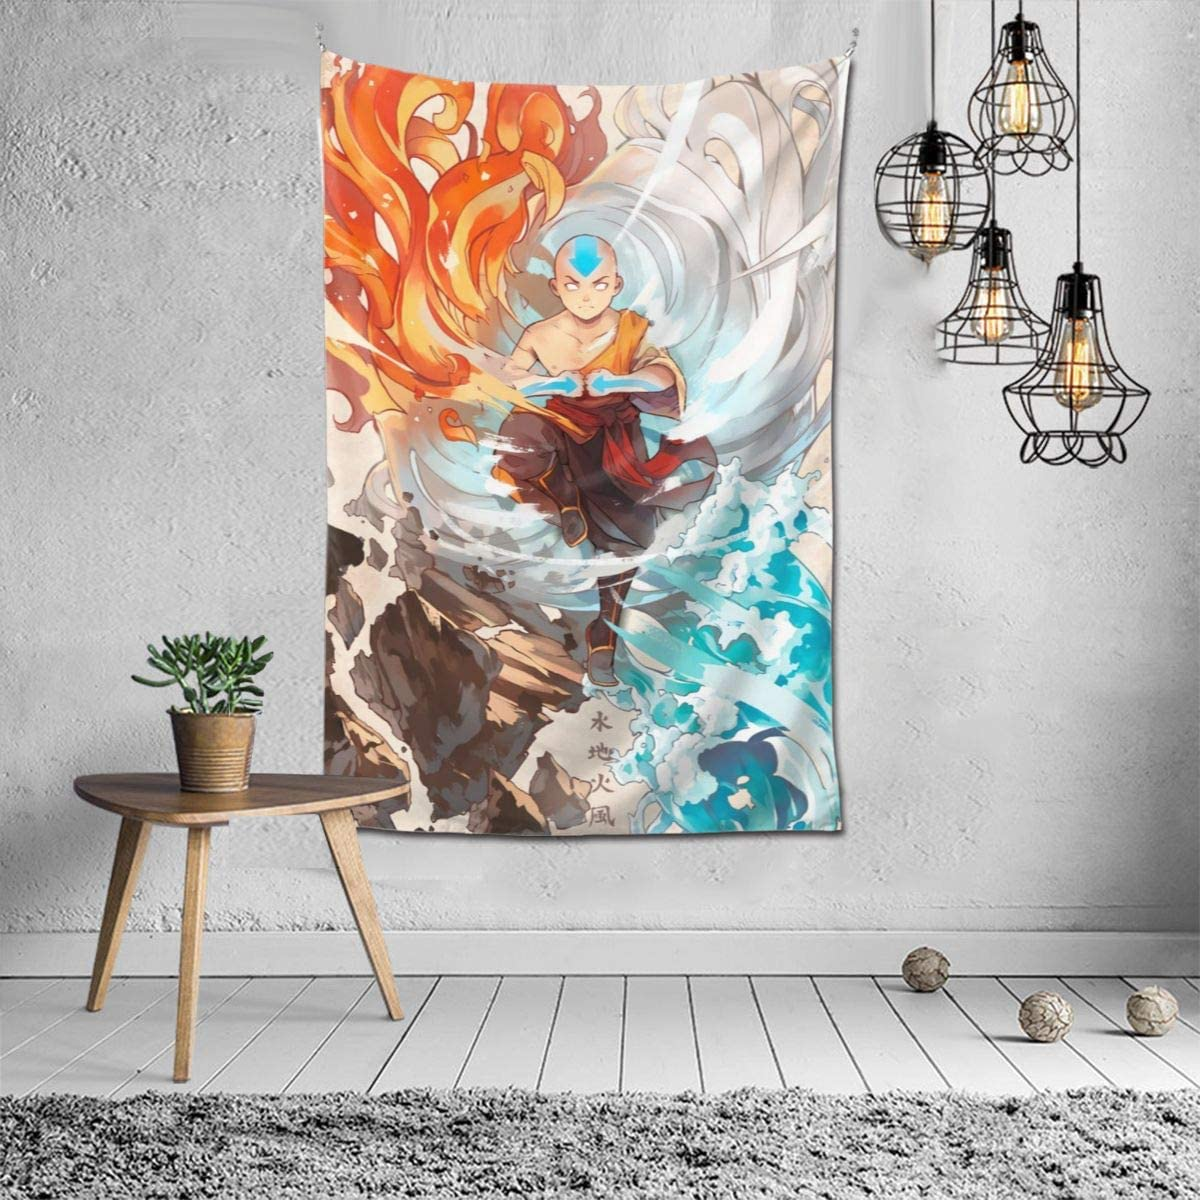 Avatar The Last Airbender Anime Tapestry Print Mural Art Tapestry Wall Hanging Tapestries For Bedroom Living Room Dorm Home D cor Japanese Tapestry 60 X 40 Inches